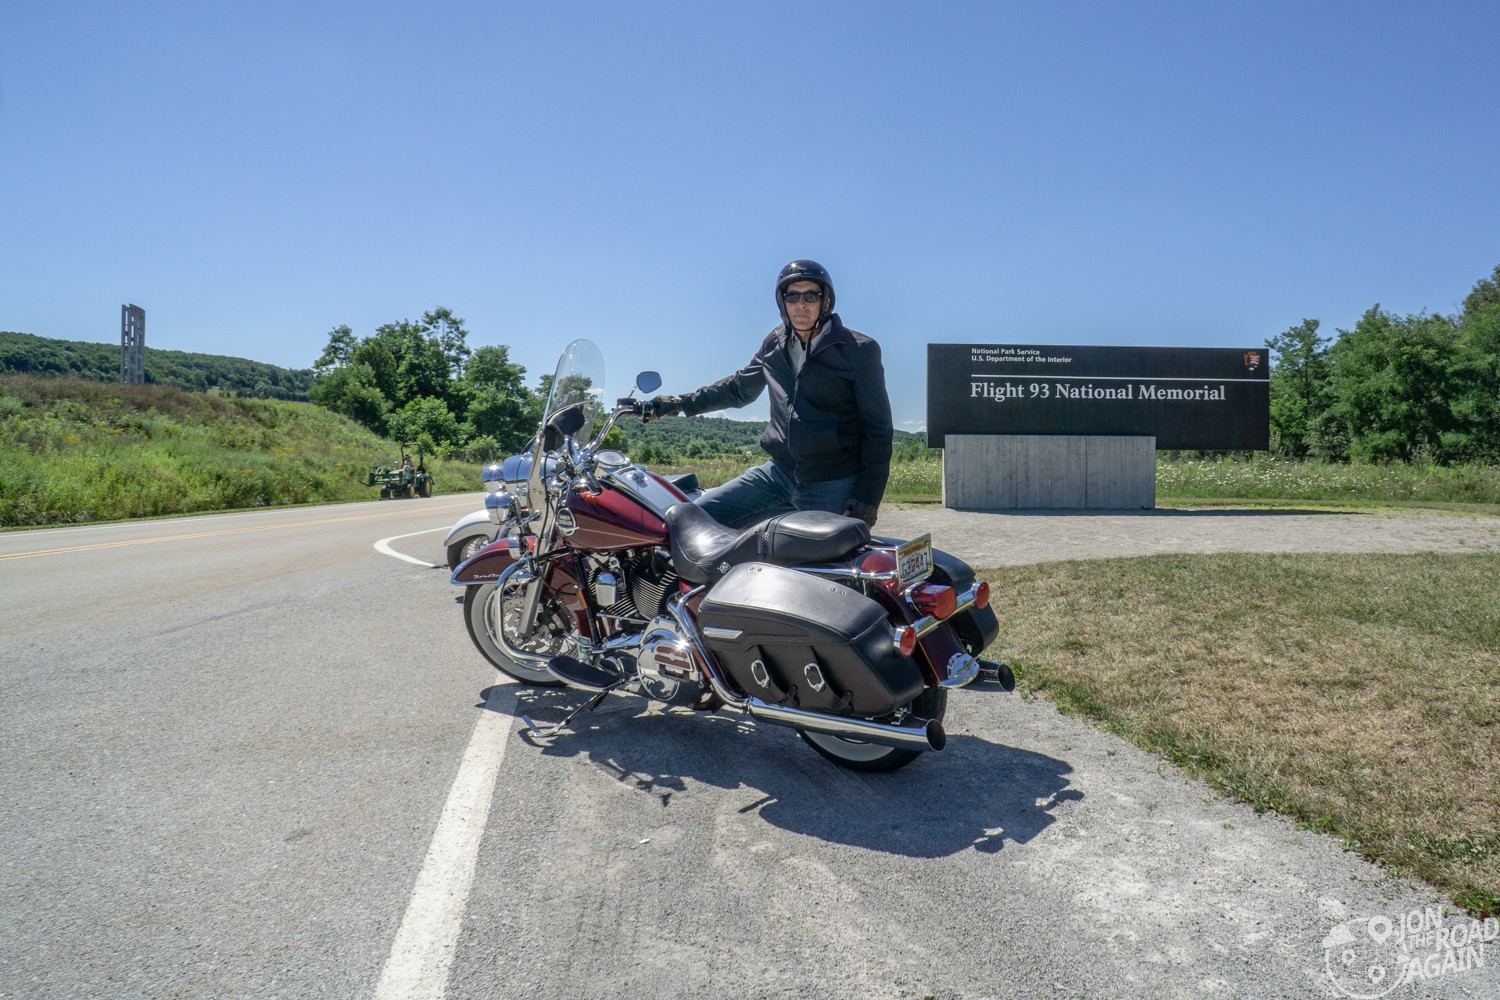 Flight 93 memorial motorcycle ride